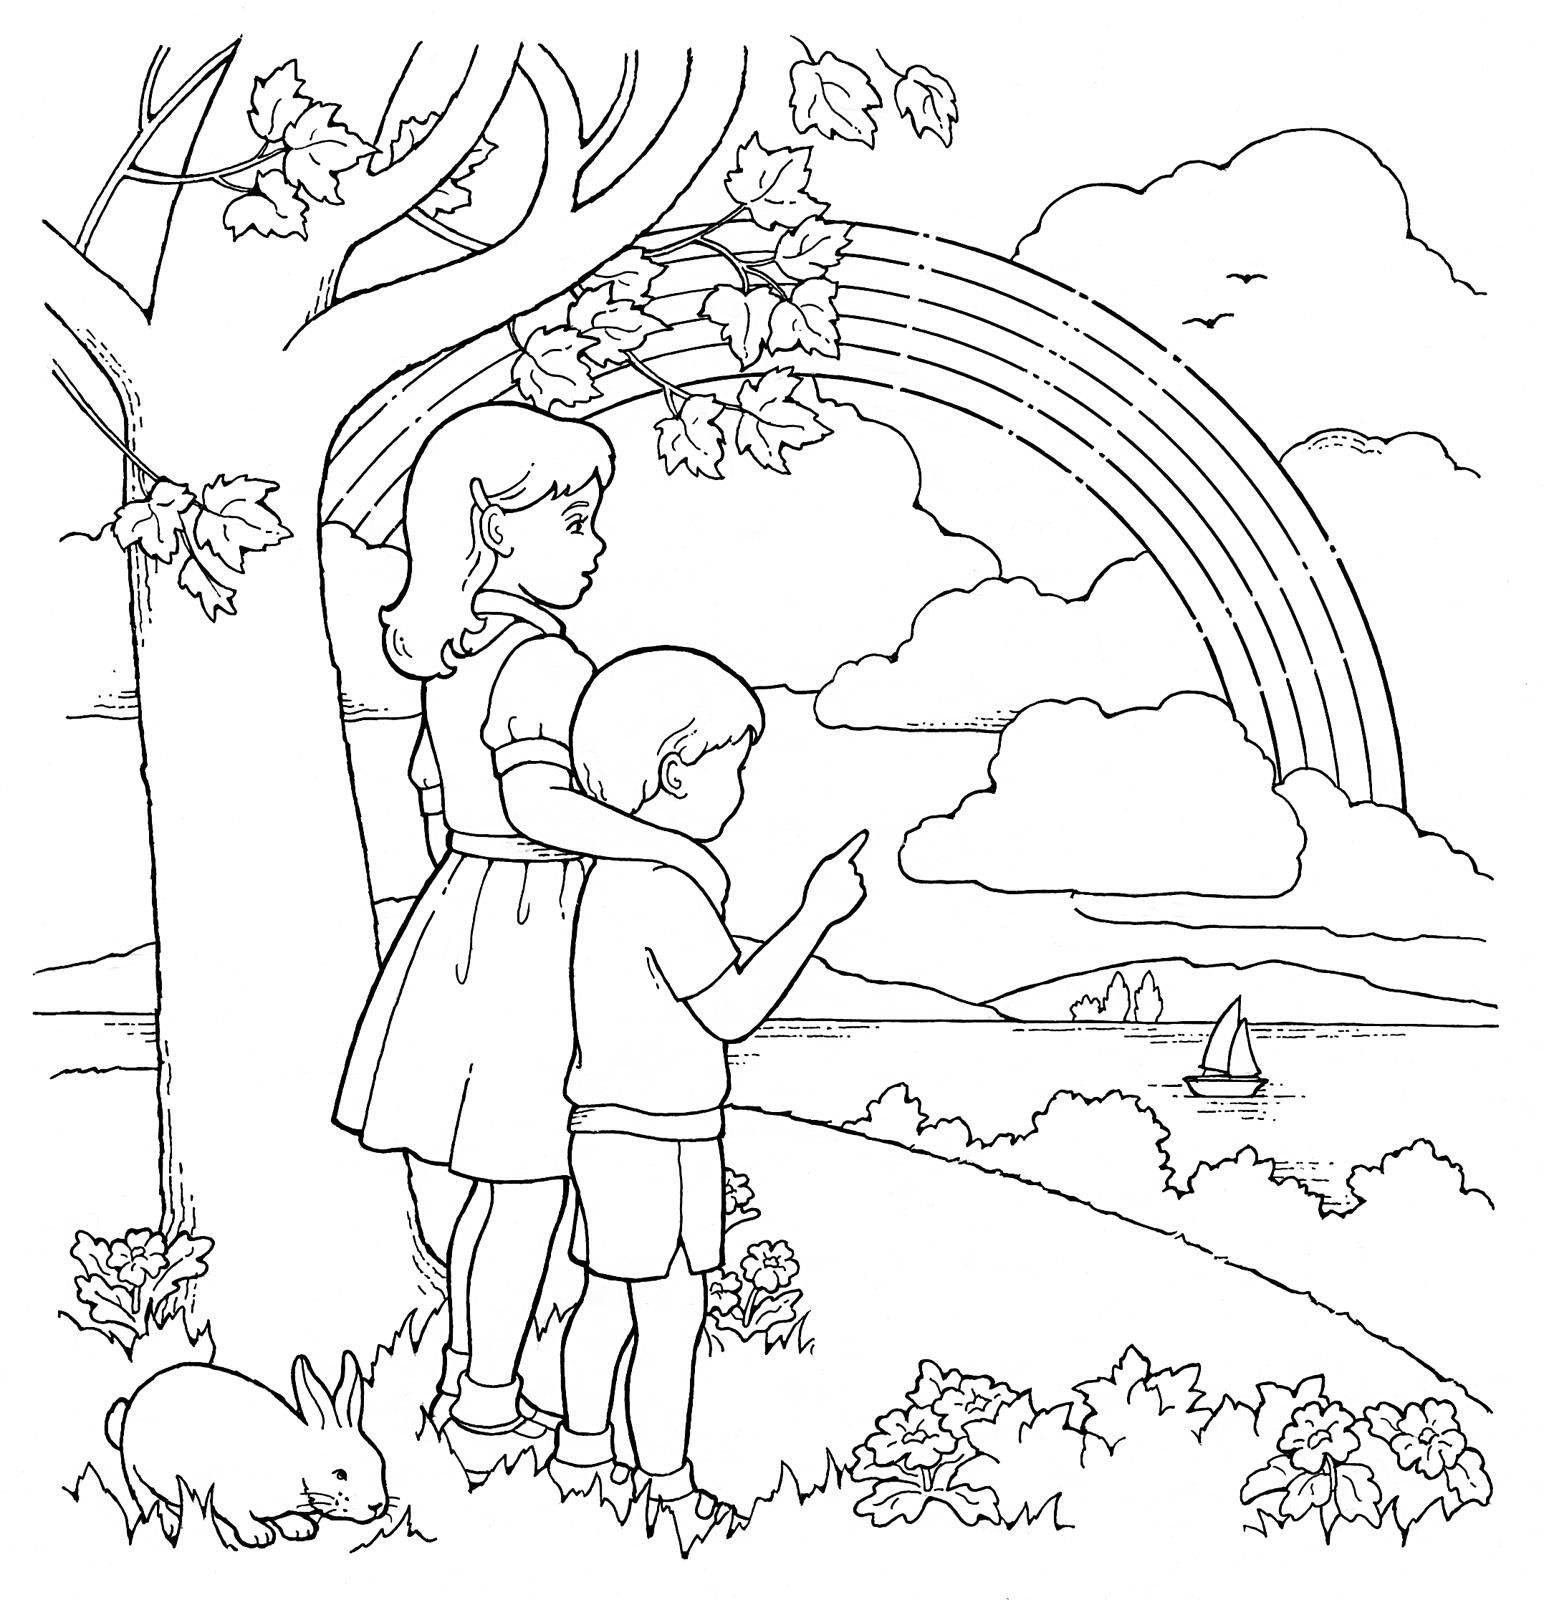 lds primary coloring pages sketch coloring page - Primary Coloring Pages